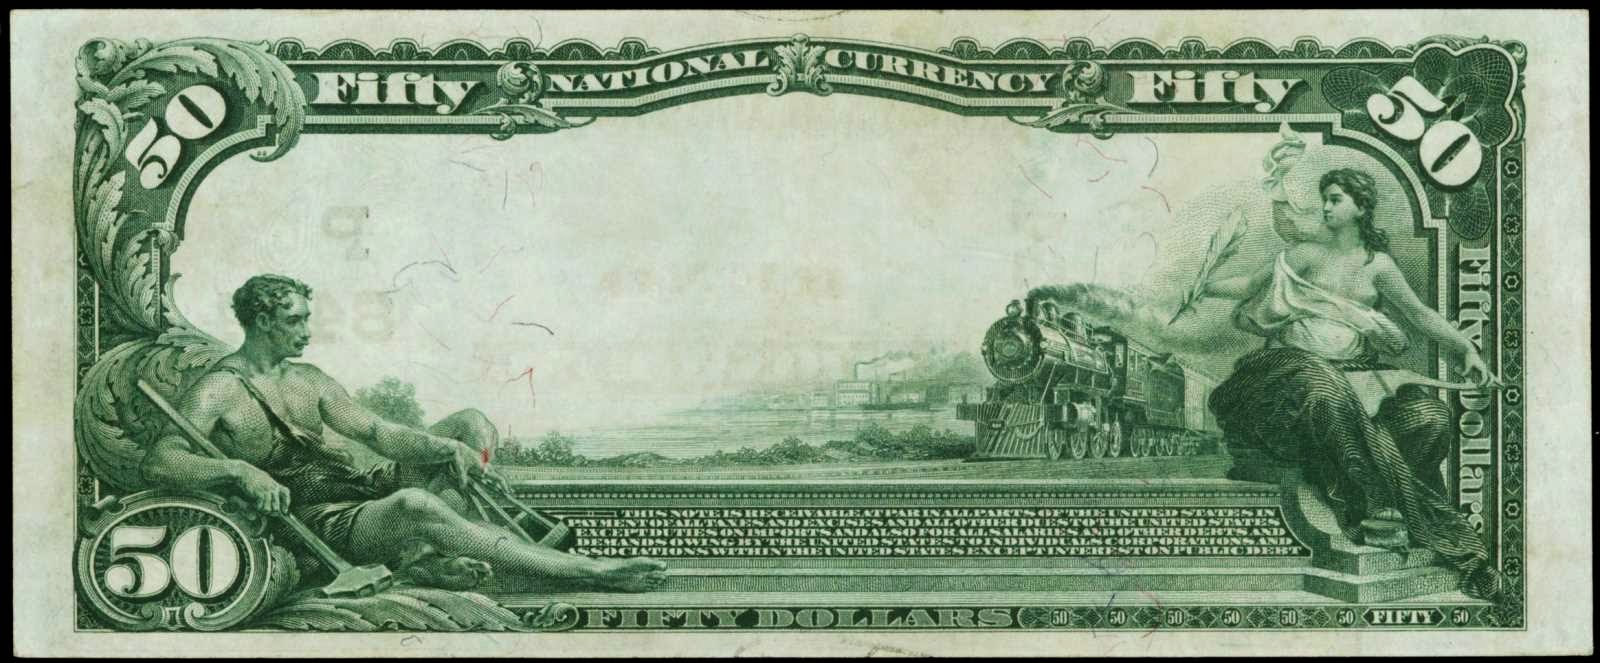 United States Currency National bank notes Fifty Dollar